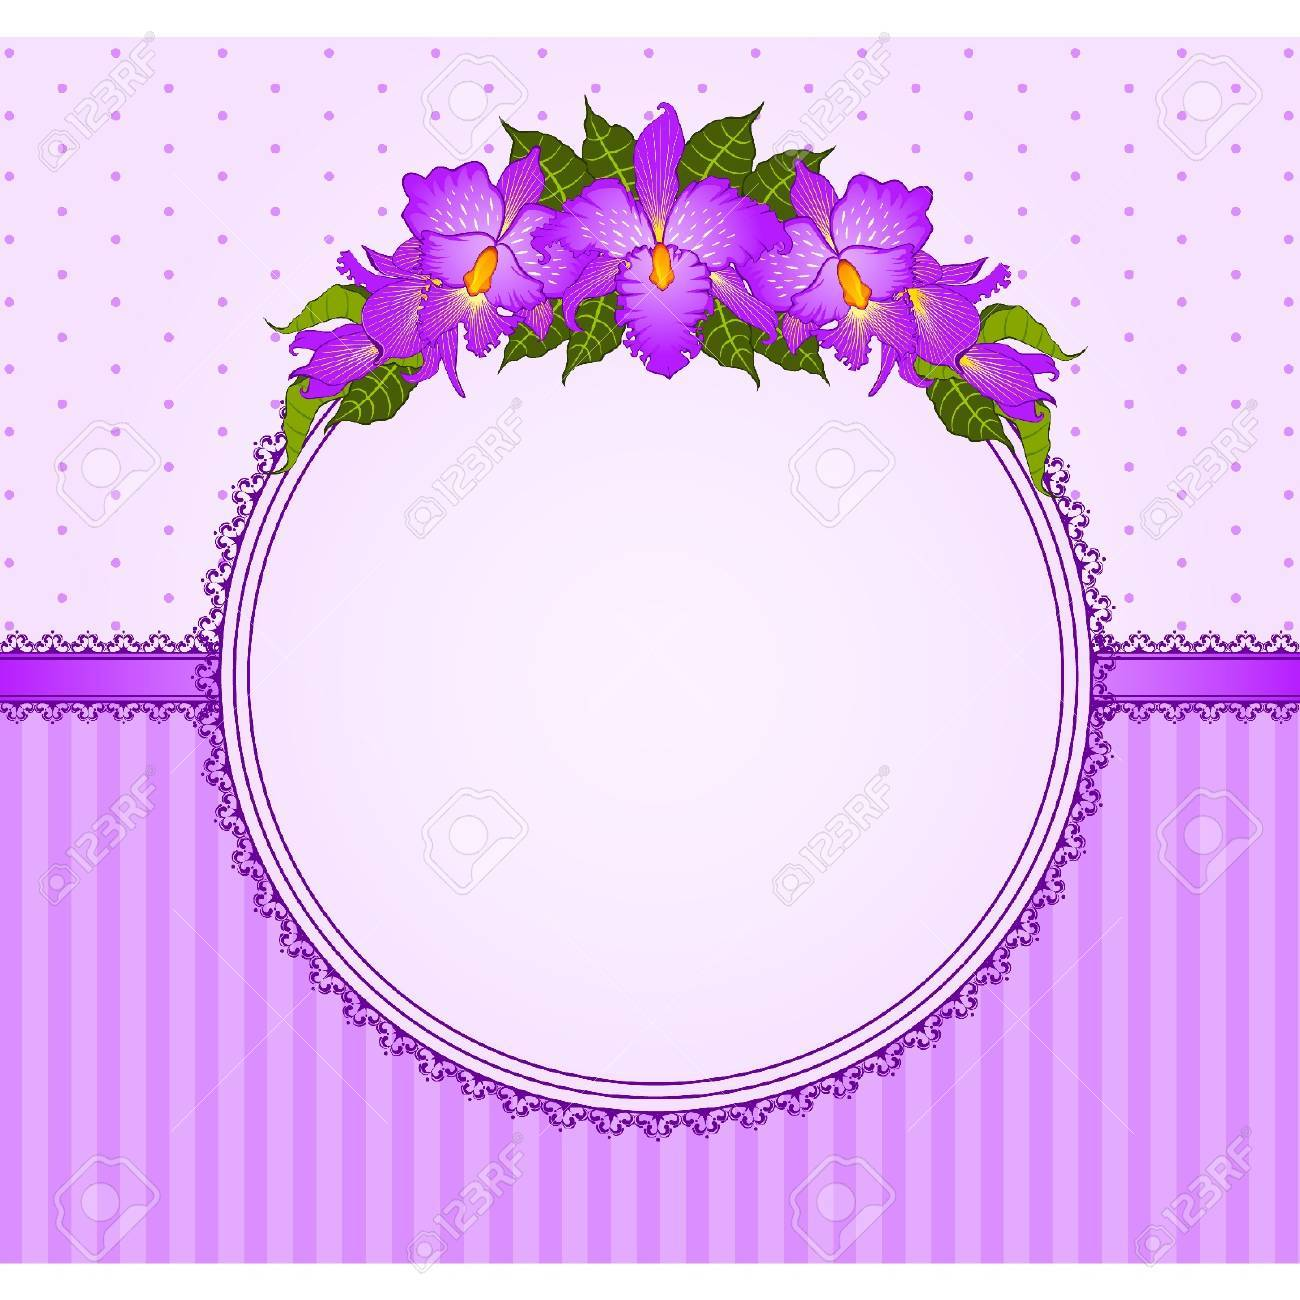 background with beautiful flowers and lace ornaments Stock Vector - 9872090